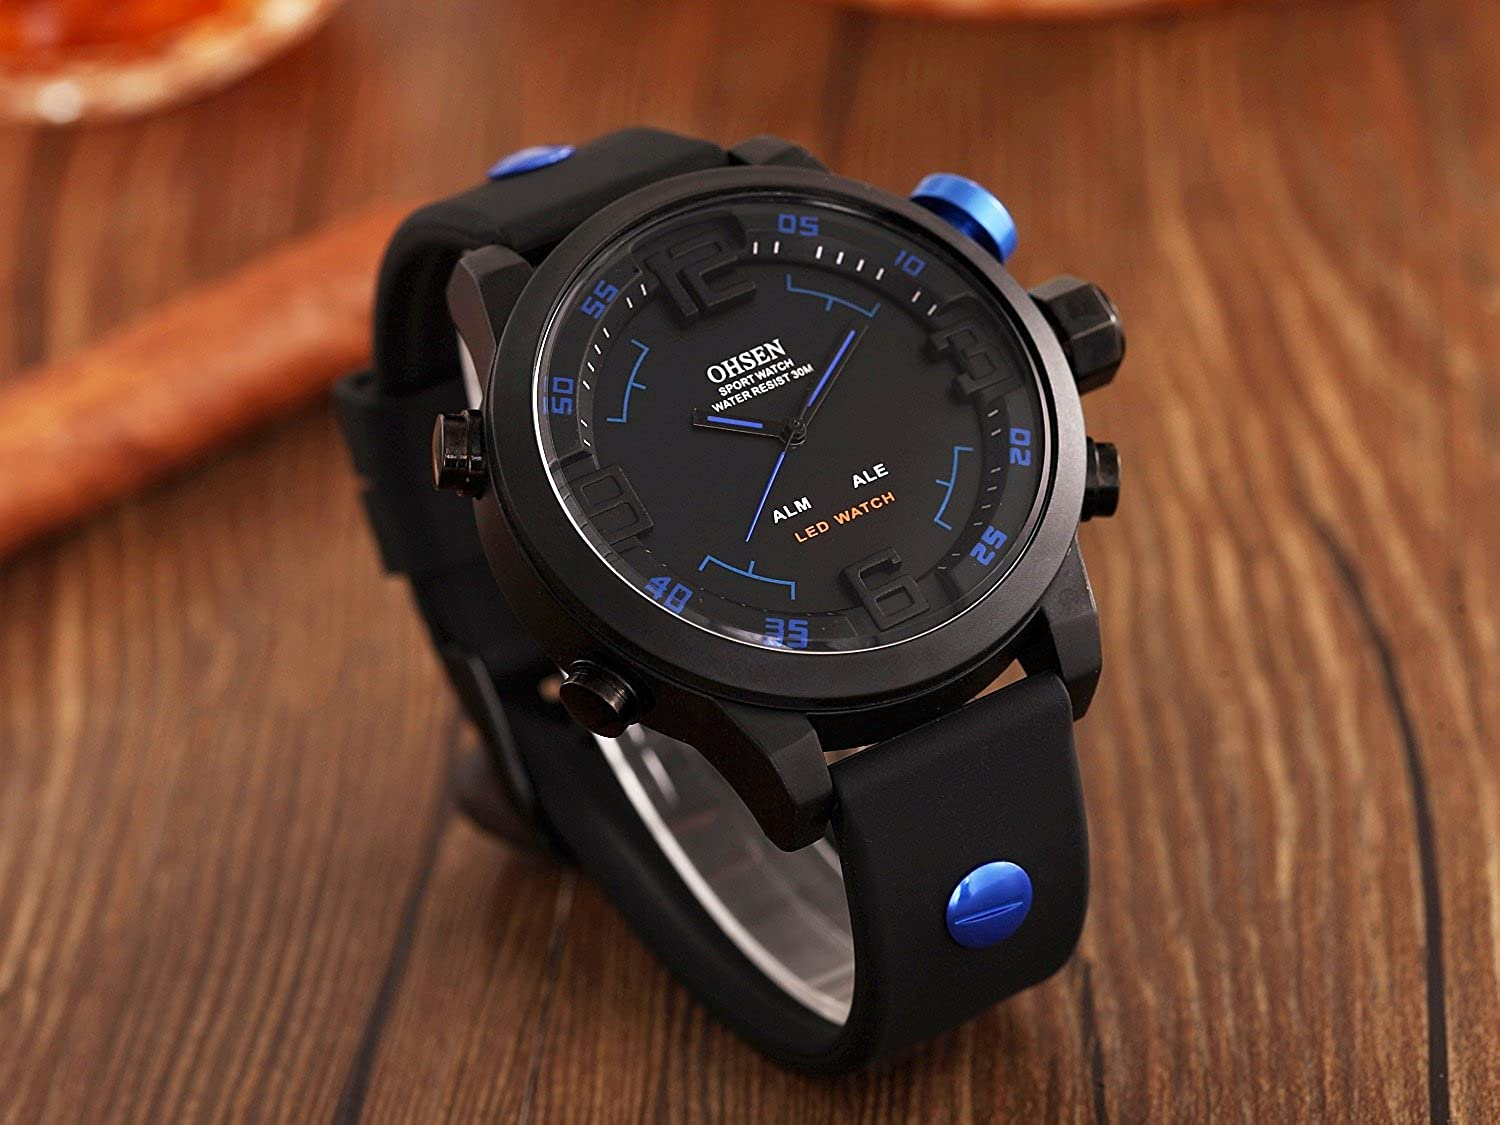 Amazon.com: ShoppeWatch Mens LED Watch Black Silicone Band Dual Time Date Day Sport Military Blue Hands OH-249: Watches